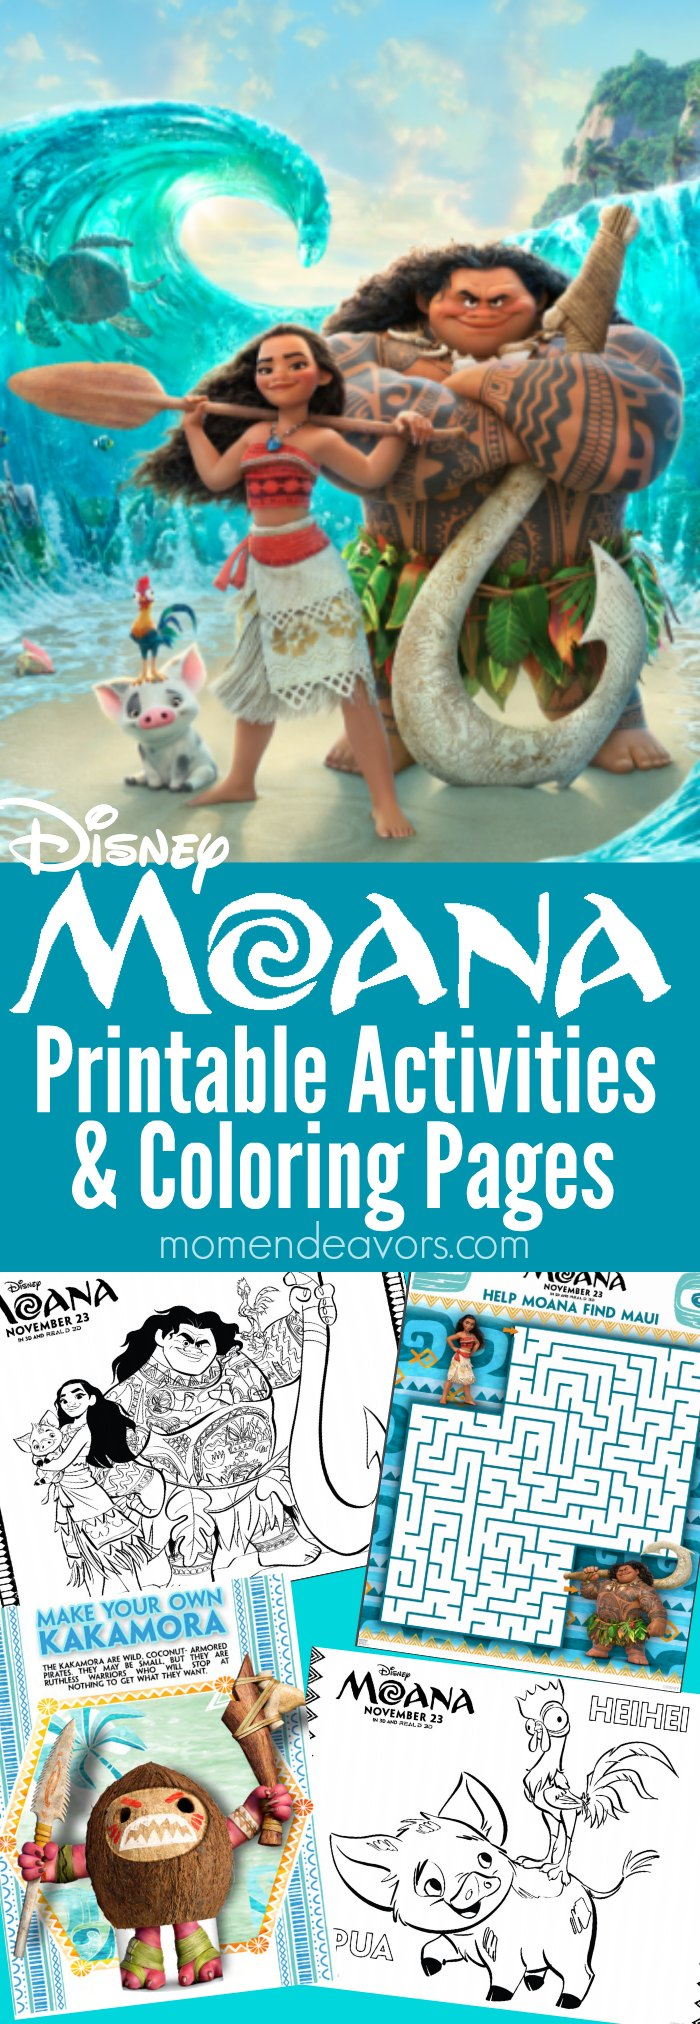 picture about Printable Moana referred to as MOANA Printable Actions Coloring Webpages